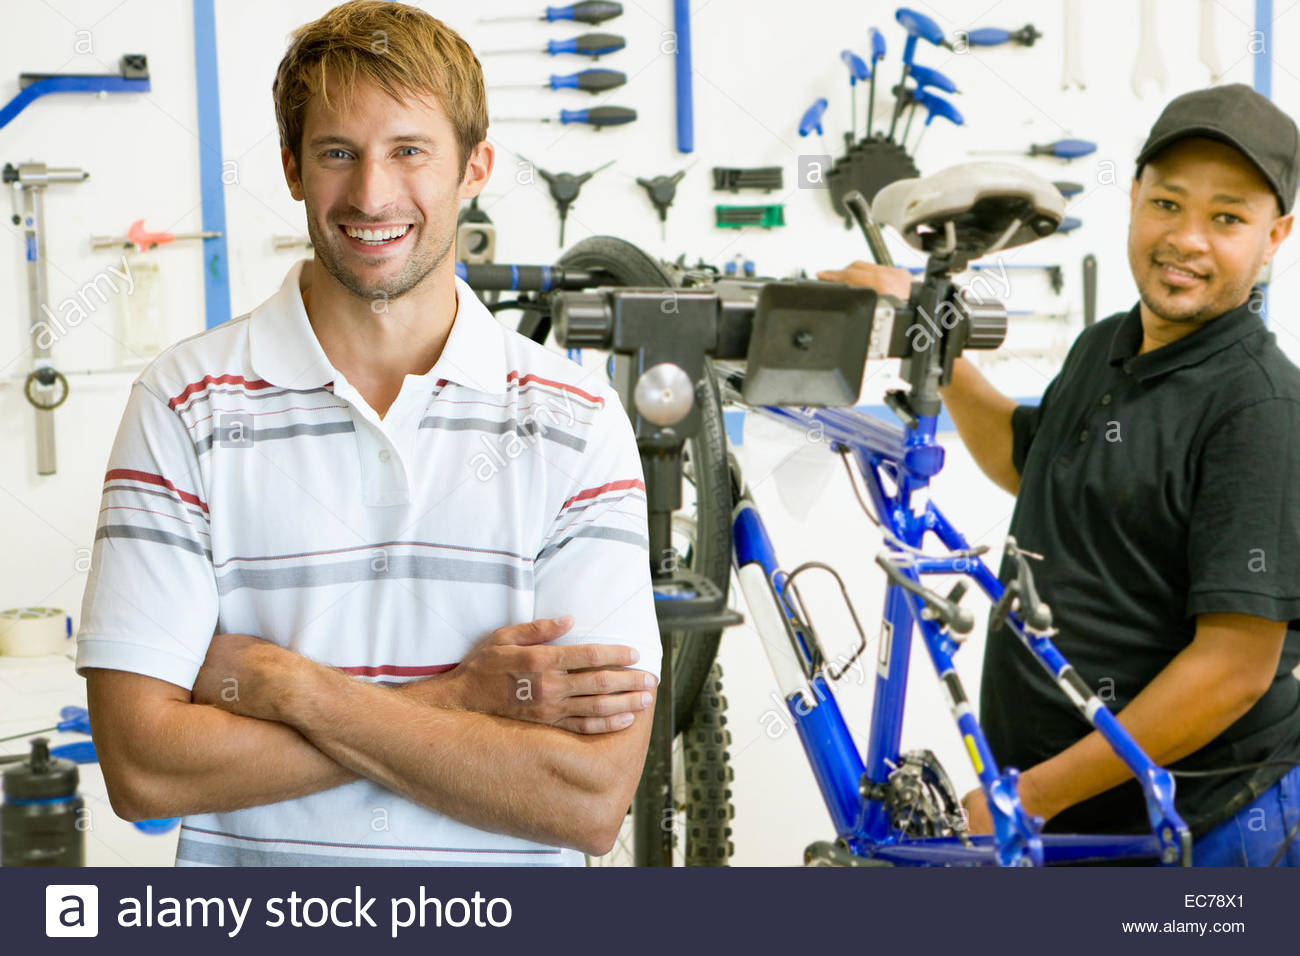 Portrait of store manager and cycle technician in workshop - Stock Image